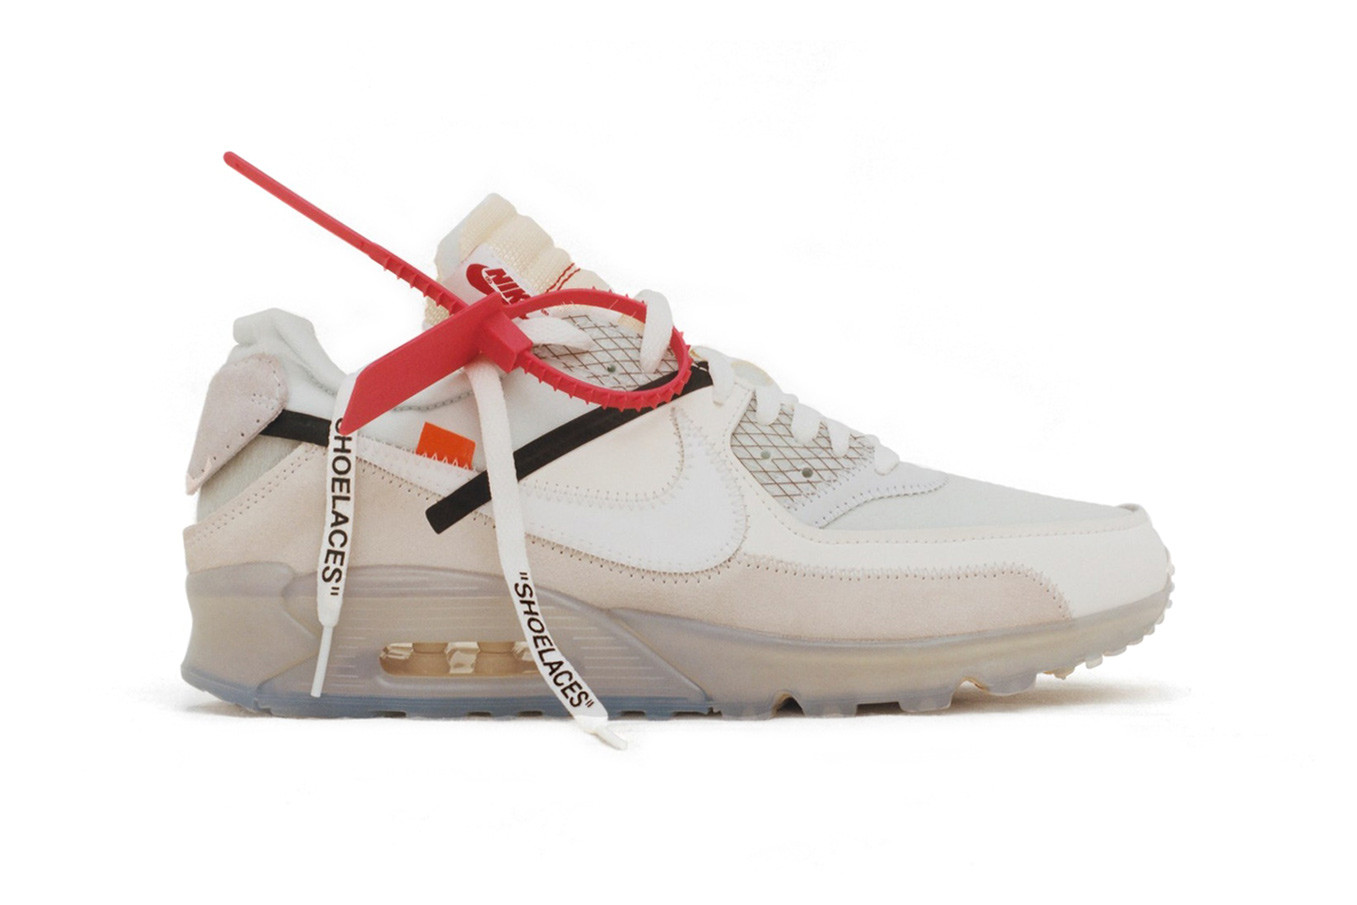 Off-White™ x Nike Sneakers Compared to